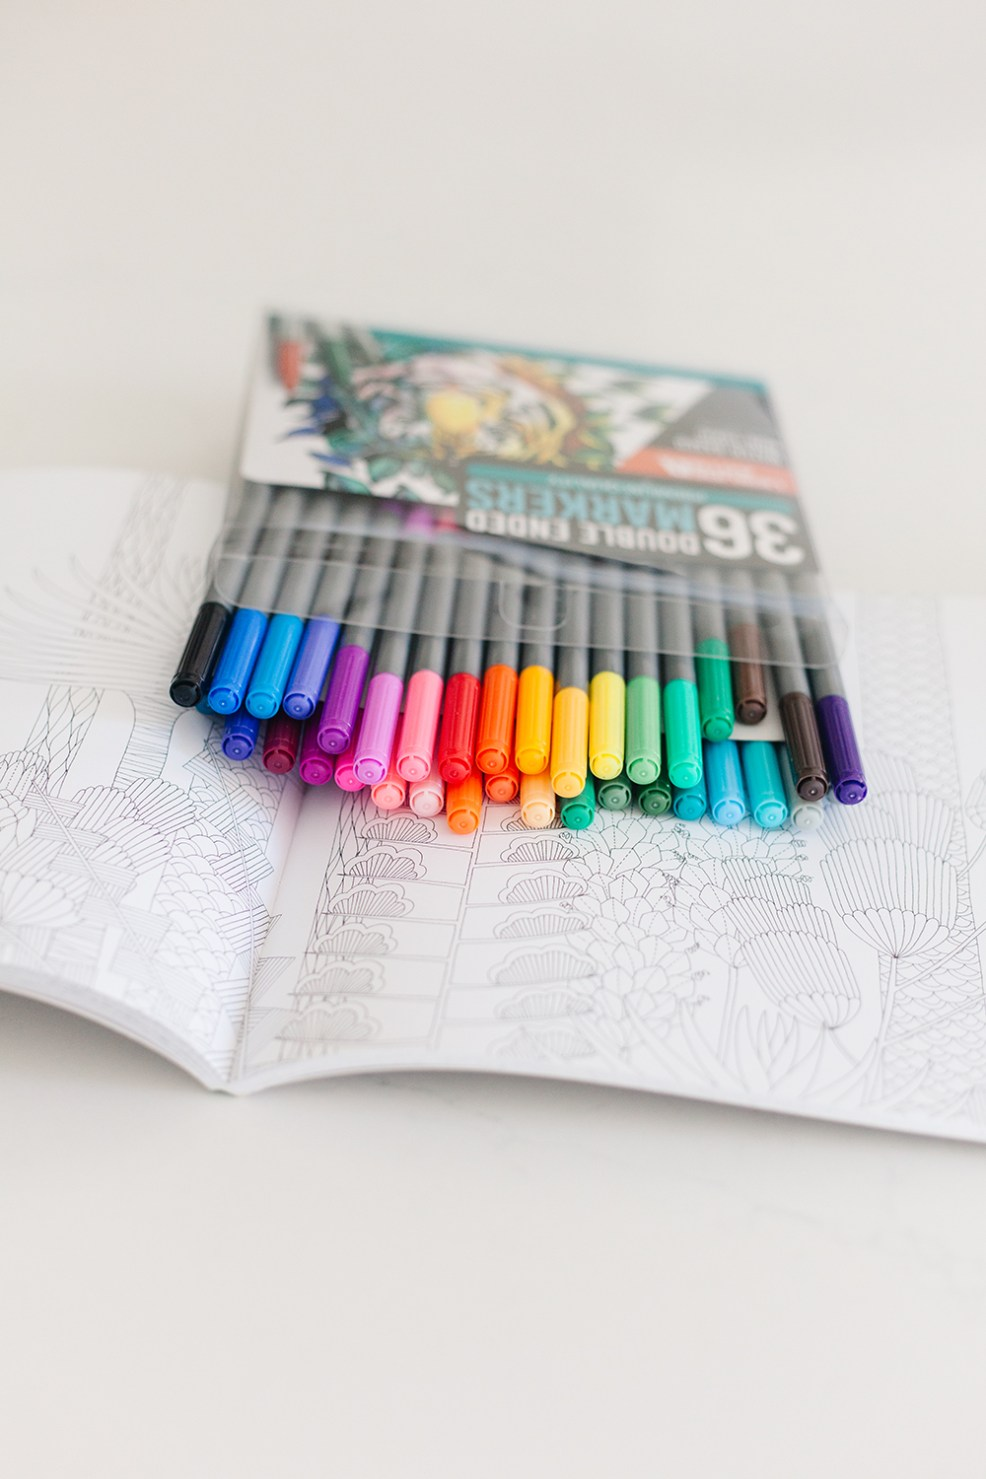 Wow and Now by popular US life an style blog, E. Interiors Design: image of a Wow and Now and now coloring book and marker set.